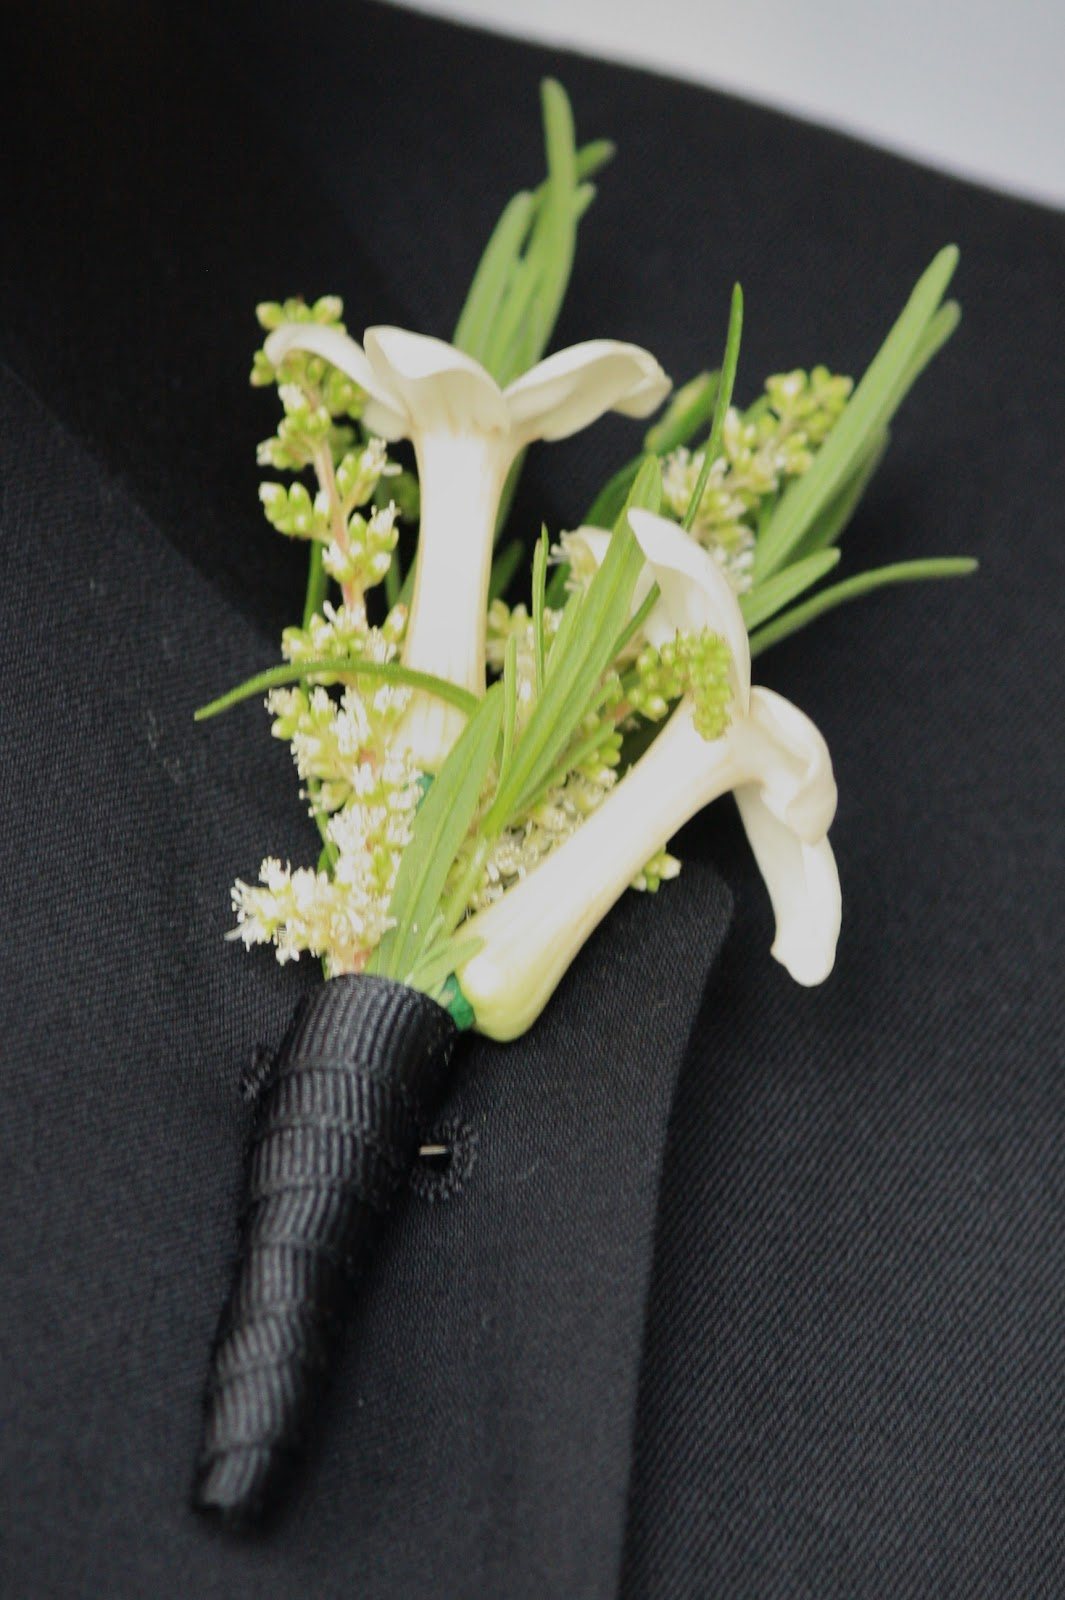 Stephanotis Boutonniere - Boutonnieres - Wedding Flowers - Groom - Usher - Best Man - Groomsmen - Ushers - Groom's Boutonniere